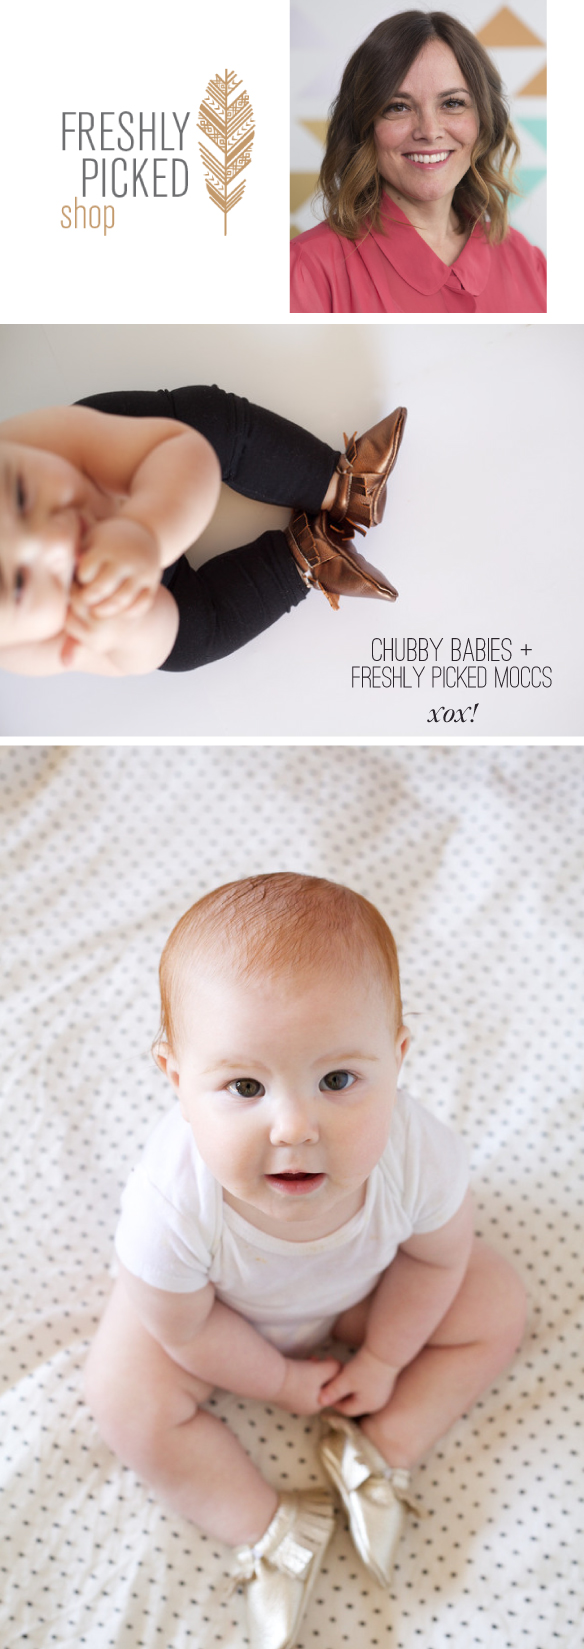 Crazy cute Freshly Picked baby shoes + an Intierview with Susan Petersen on Beautiful Hello Blog